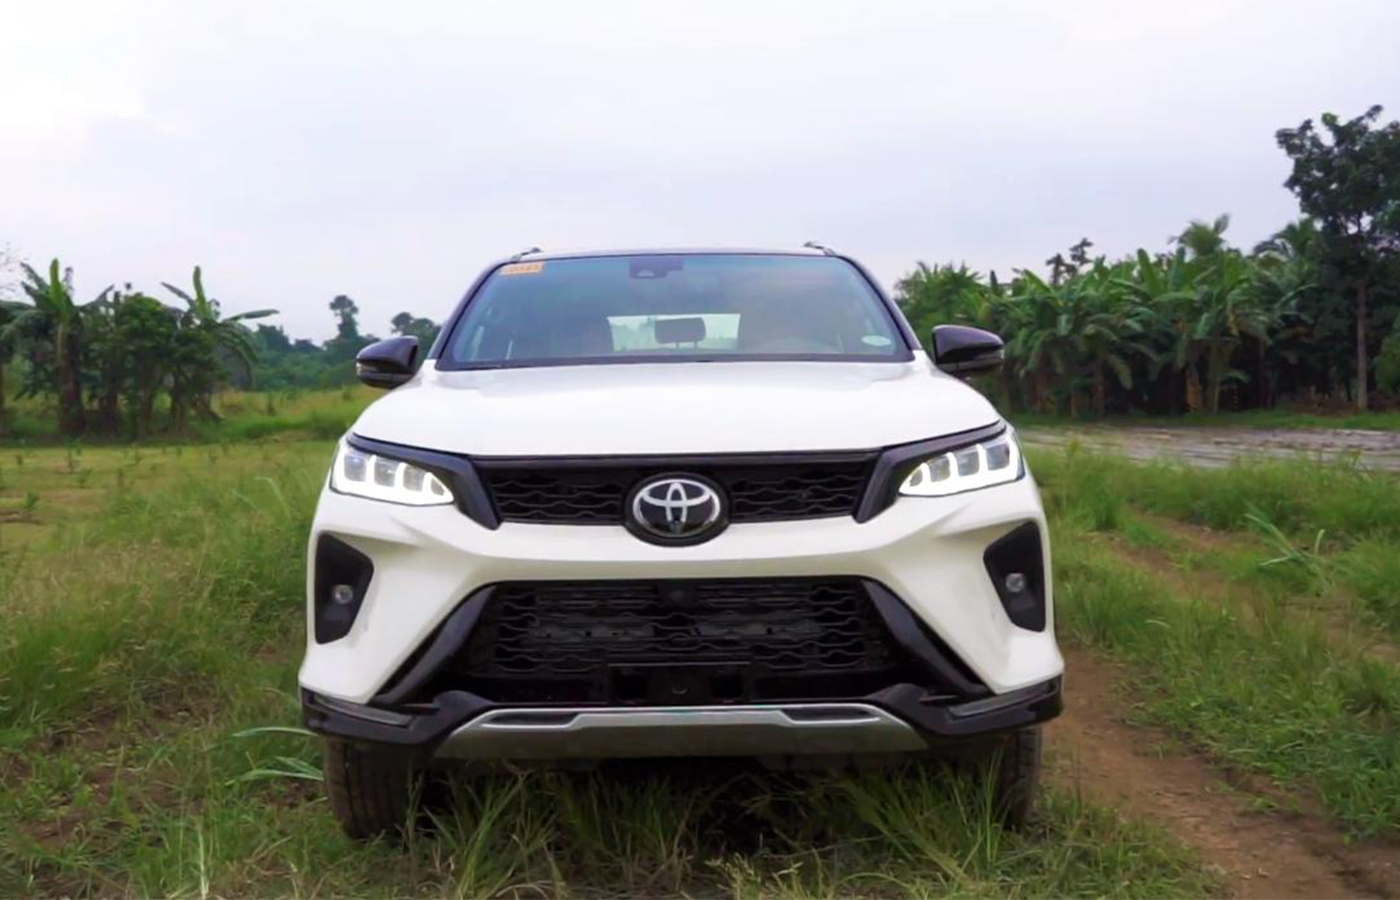 Why Should I Buy The New Fortuner?